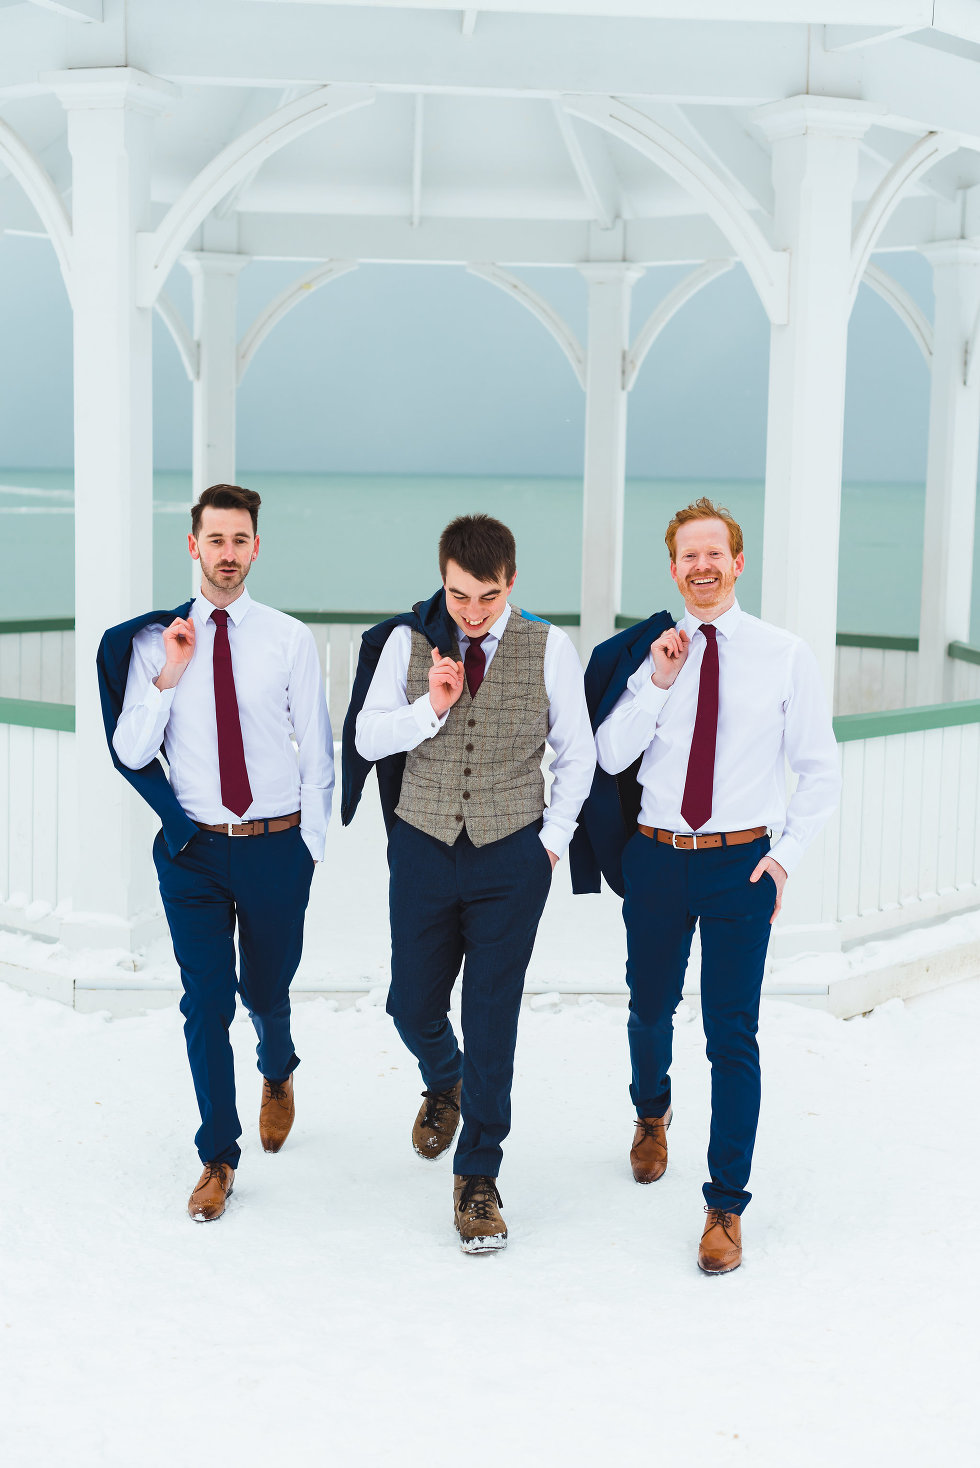 groom and his groomsmen walking away from white gazebo with their suit jackets hanging over their shoulders Prince of Wales Hotel Niagara wedding photography Gillian Foster